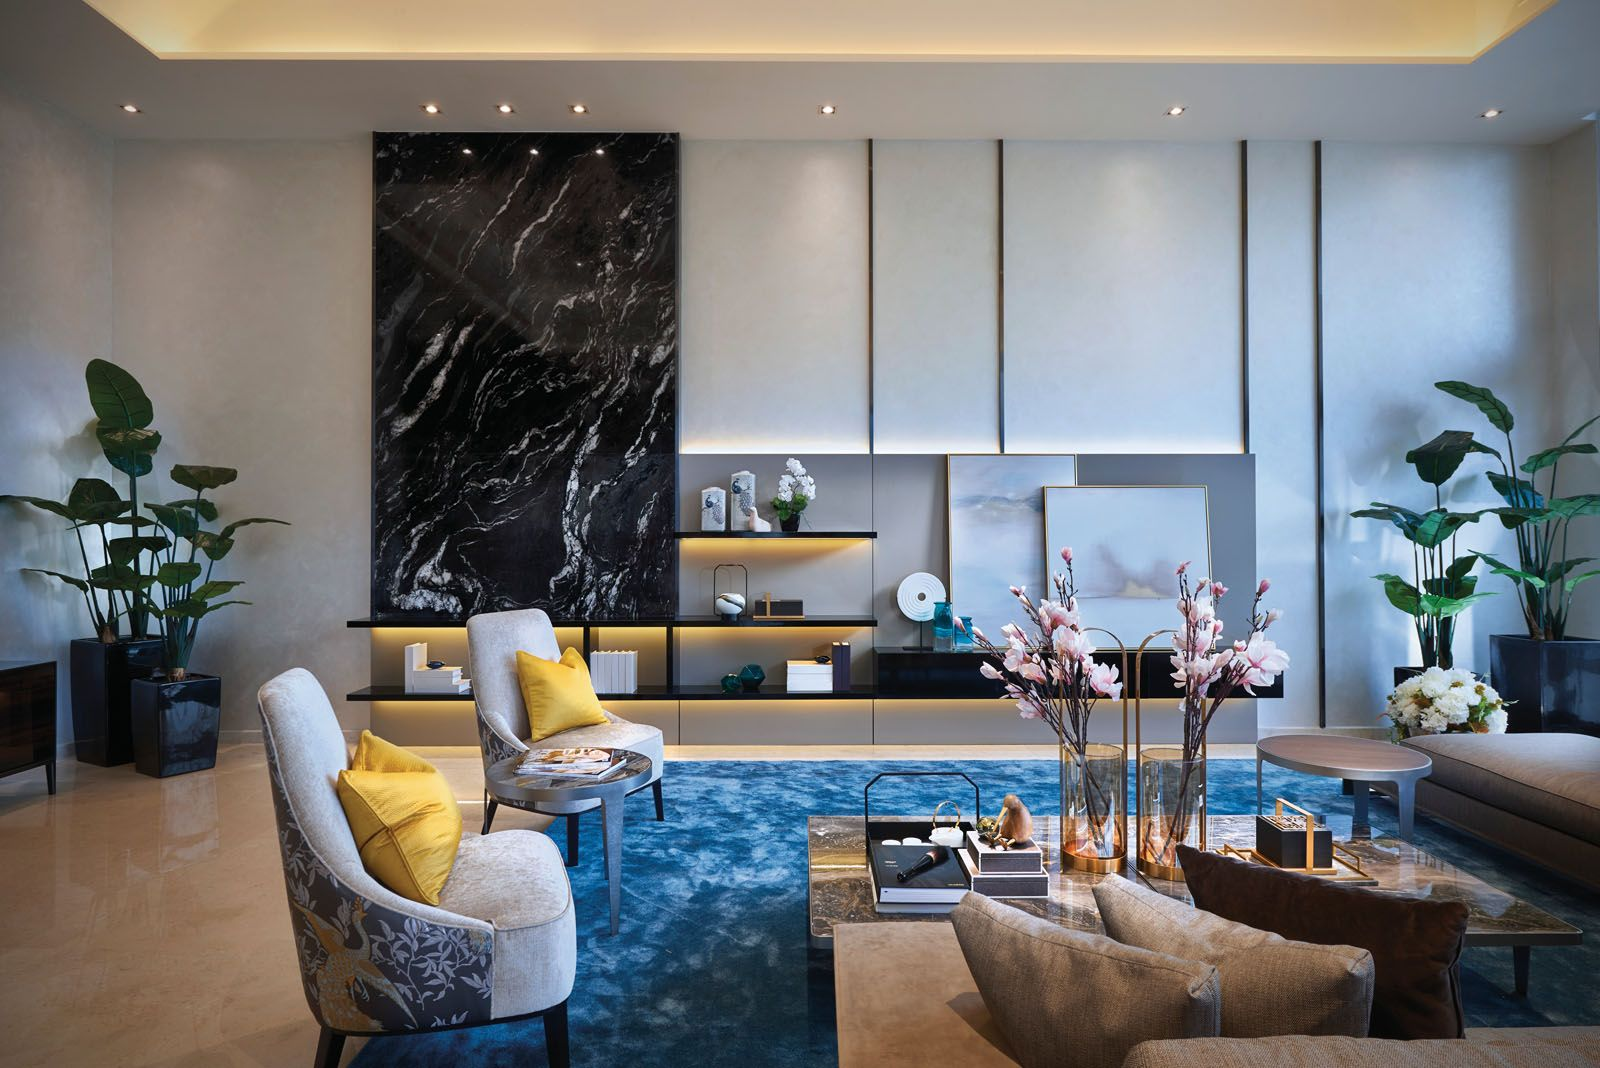 The beautiful veins of the marble feature wall echo the design of the abstract artworks displayed at the living area